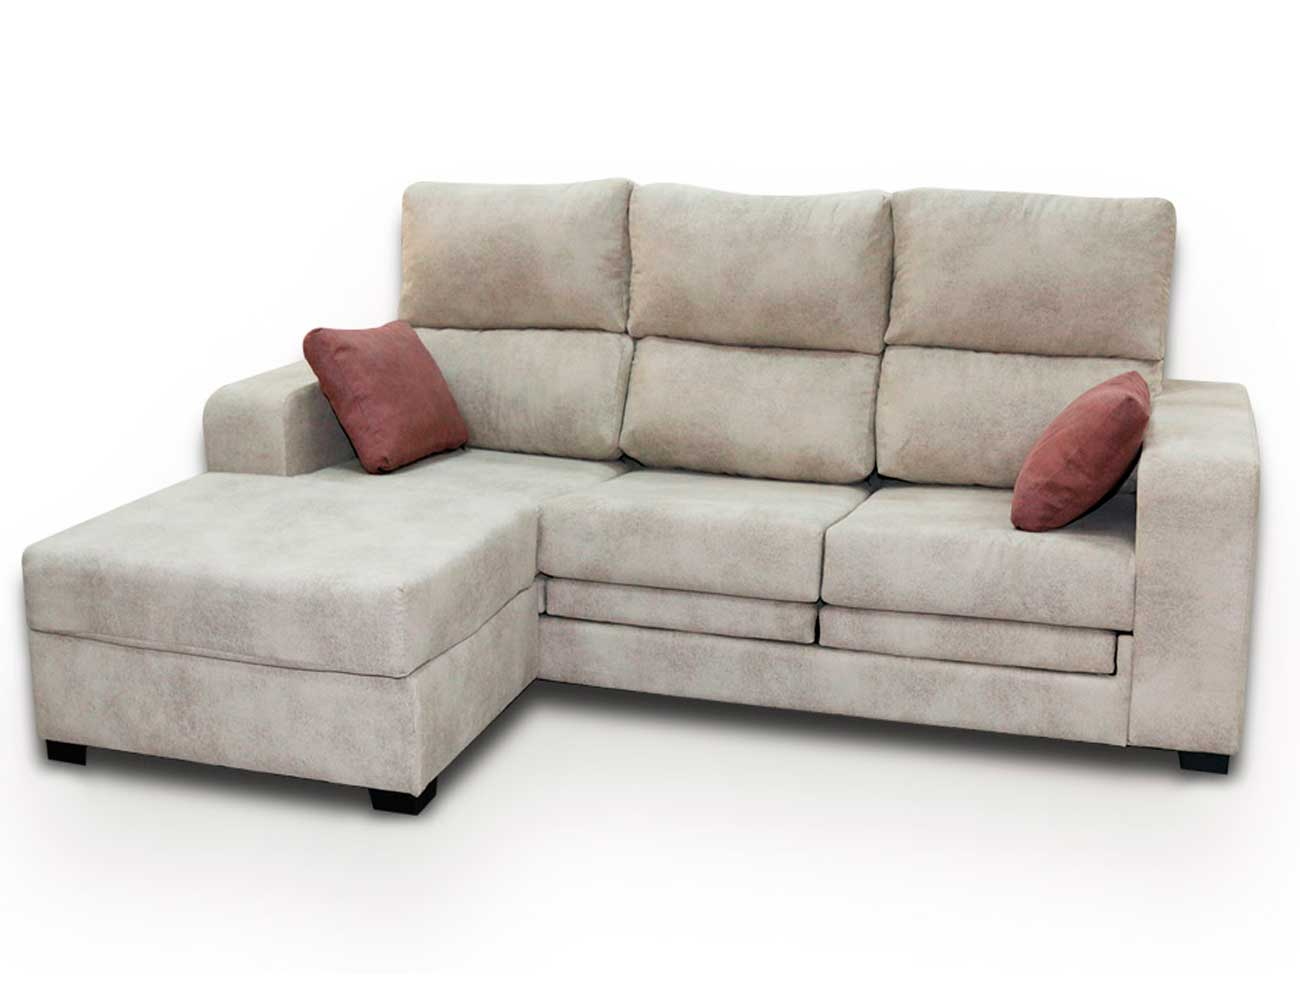 Sofa 3p puff reversible5